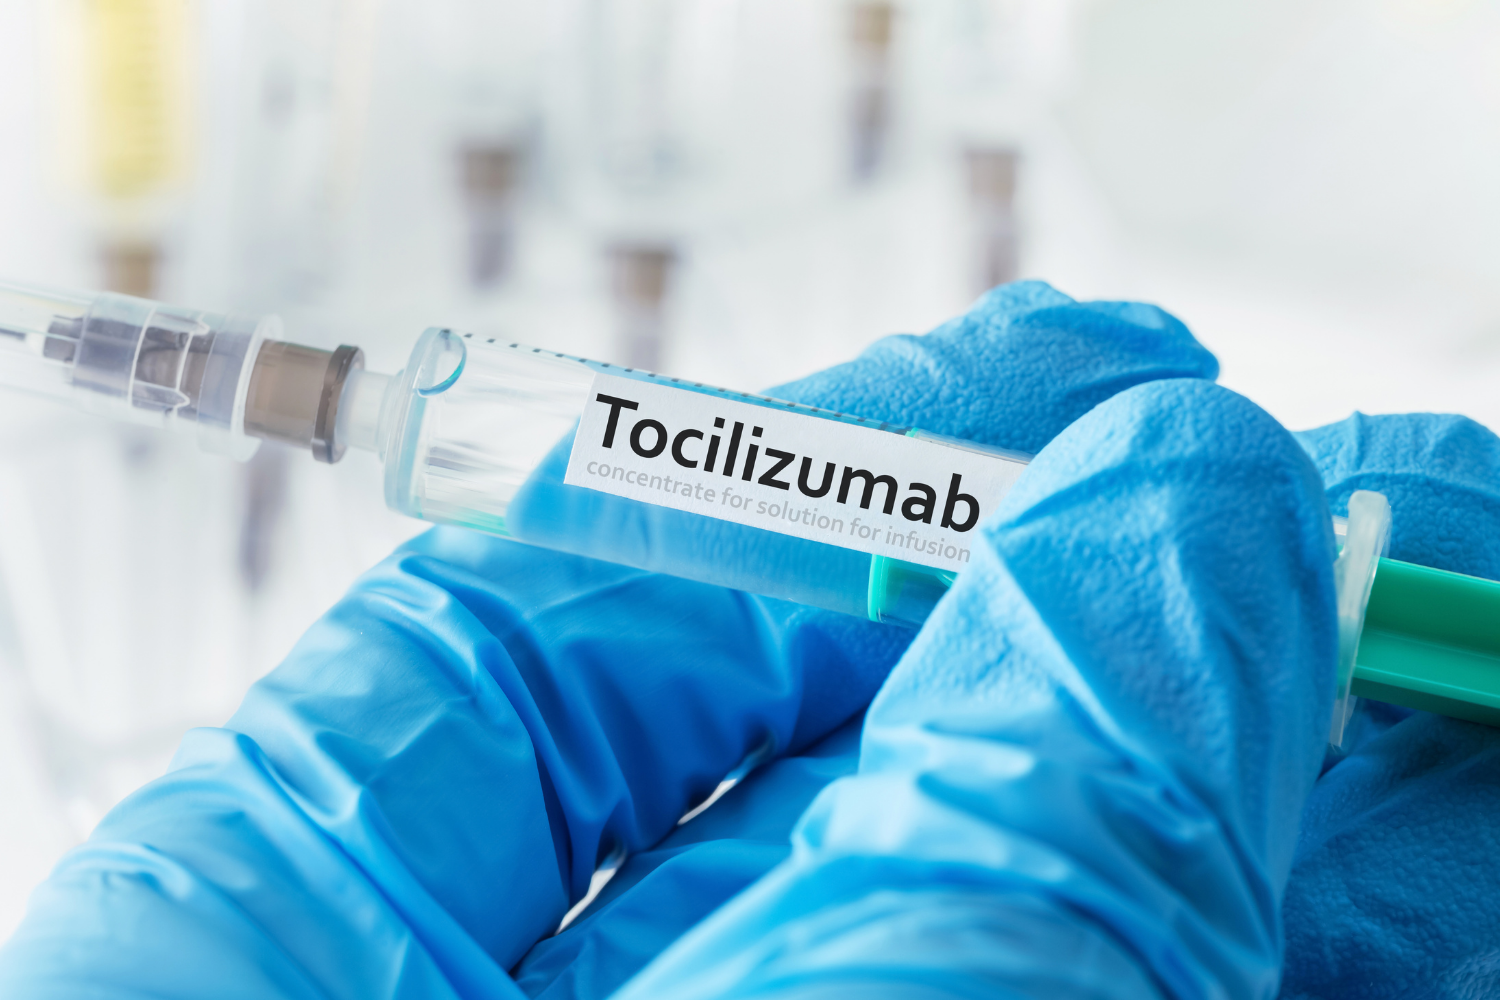 Discussing the use of tocilizumab in treating COVID-19 - preview image